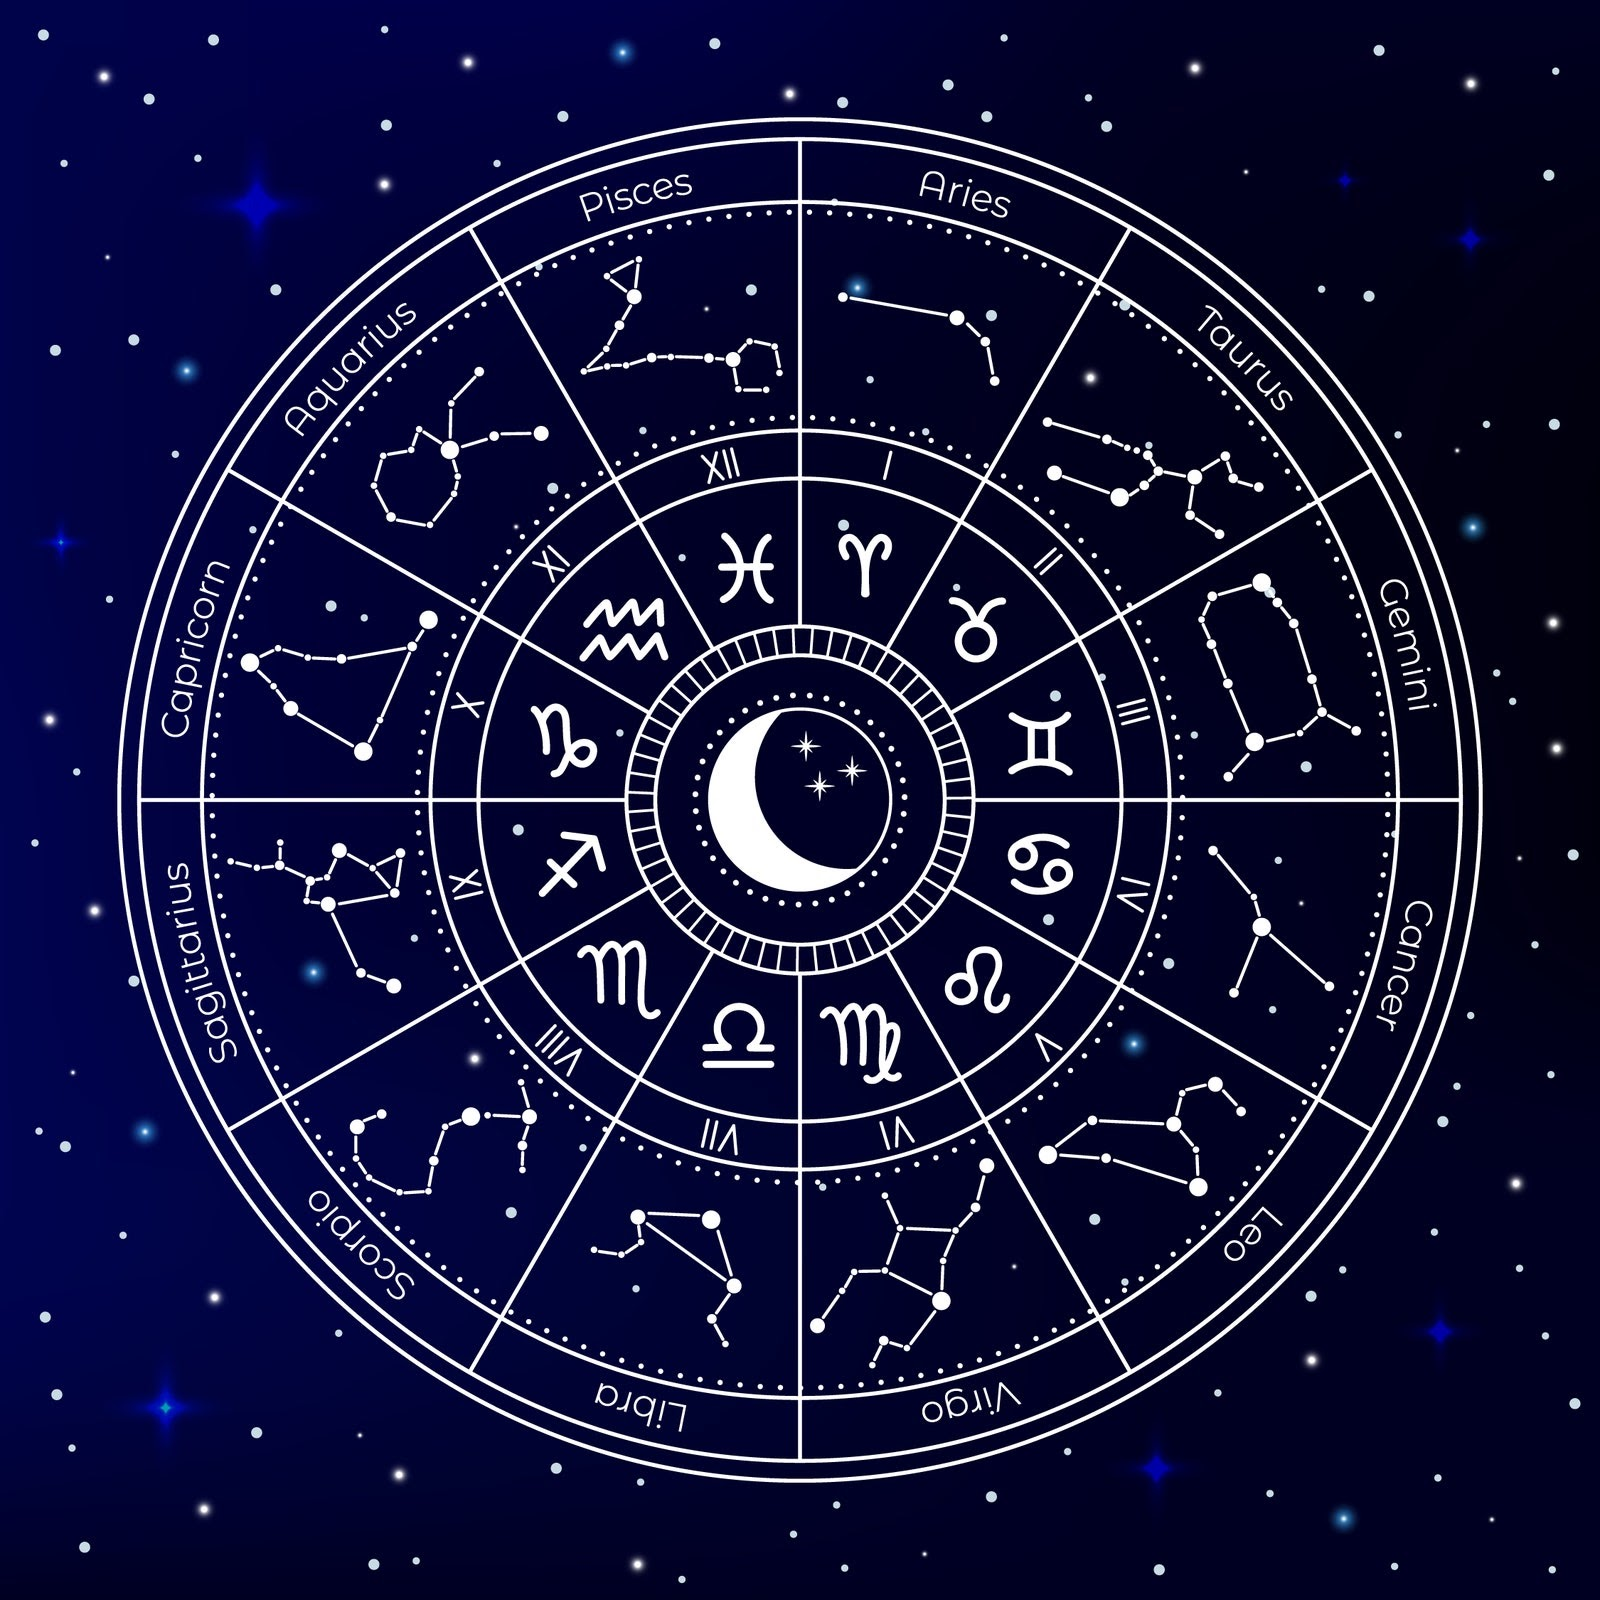 Pictured is an astrological chart, or horoscope, which represents the positions of the Sun, Moon, planets, and astrological aspects at a specific time in history (like someone's date of birth). Image courtesy of allure.com.